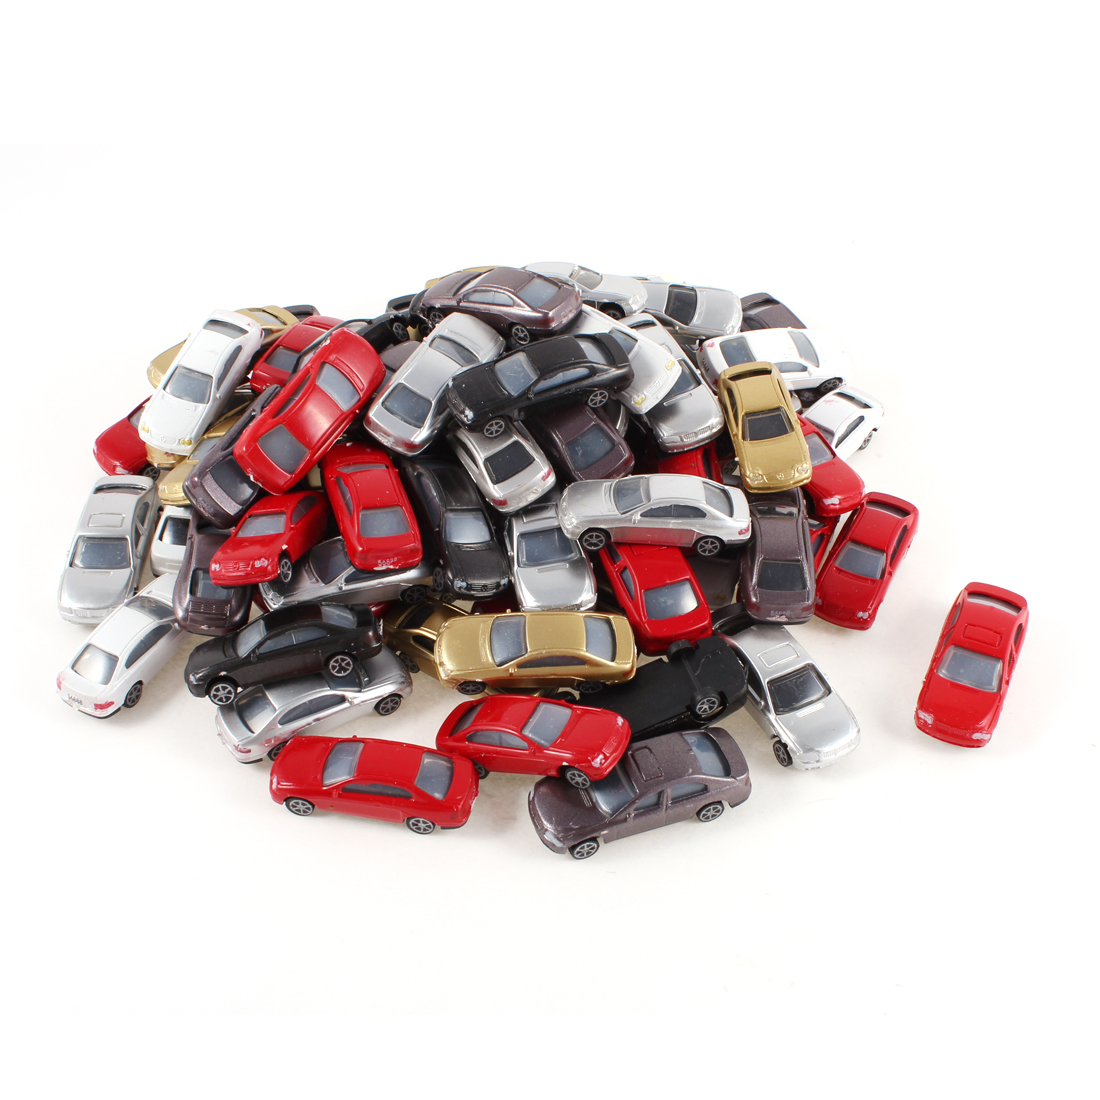 100 Pieces Assorted Colors Plastic Model Car Toy Layout Scene 1:100